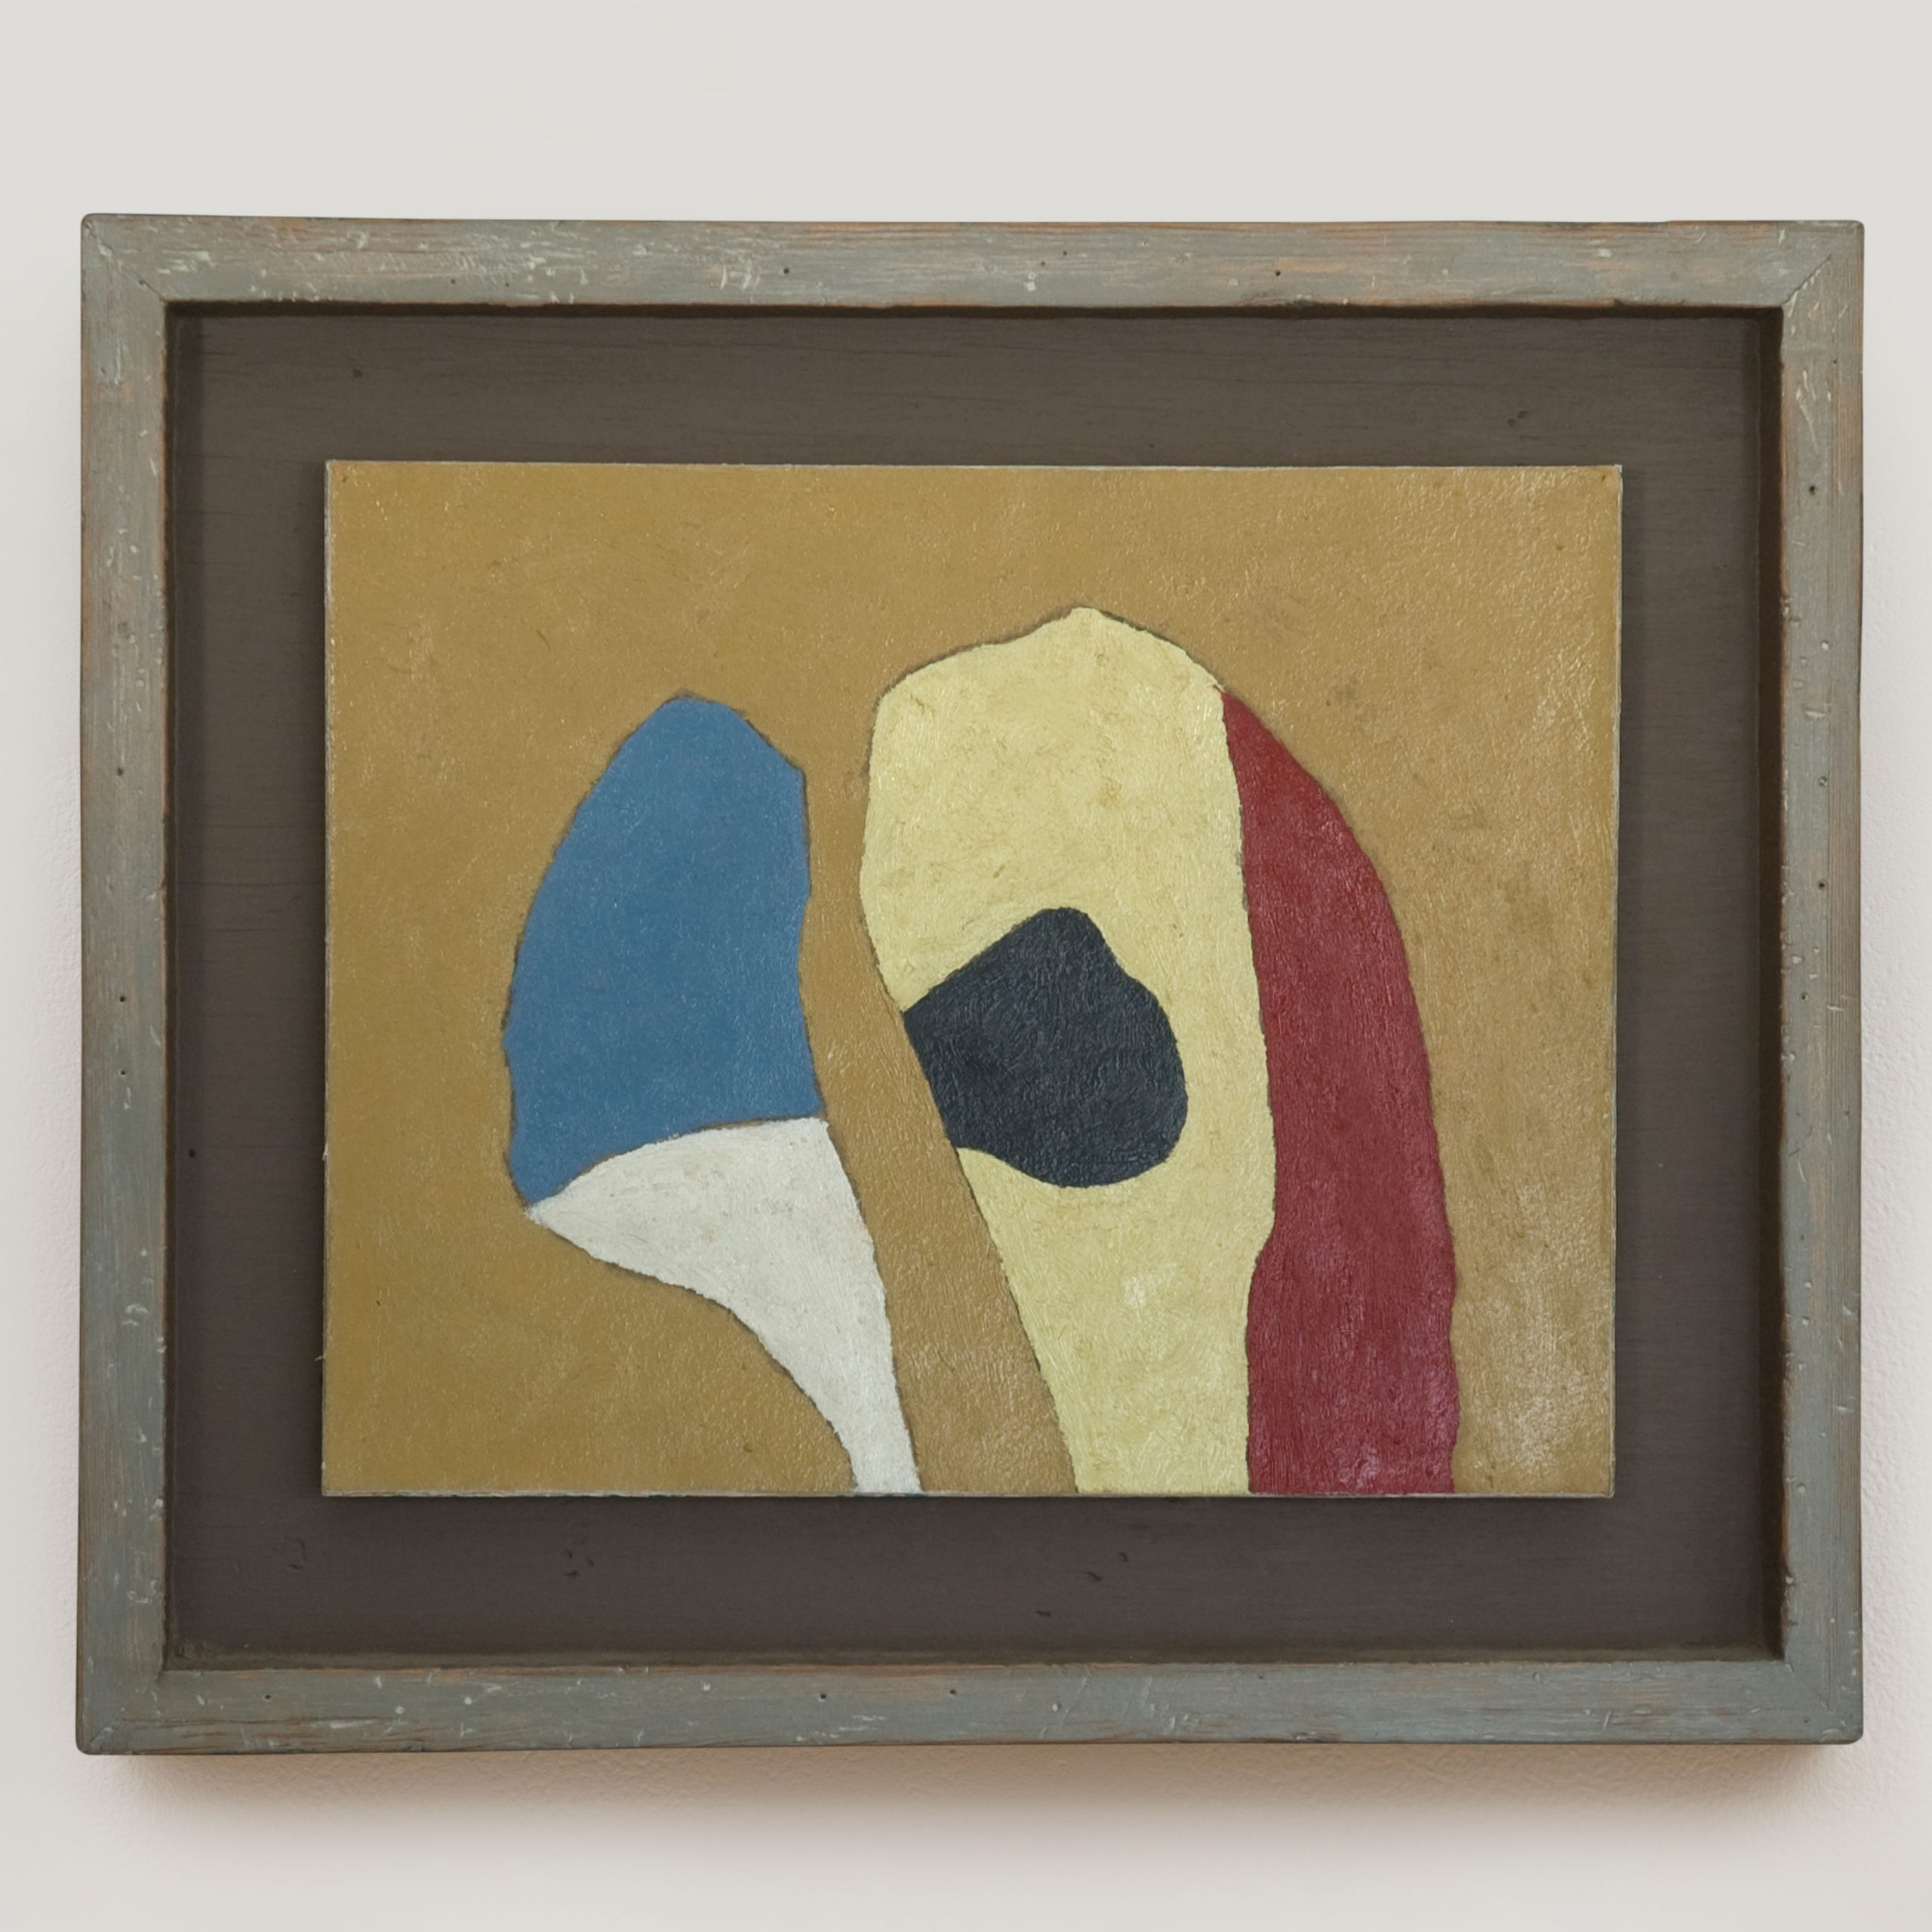 Frederick Hammersley, No doubt about it, 1985